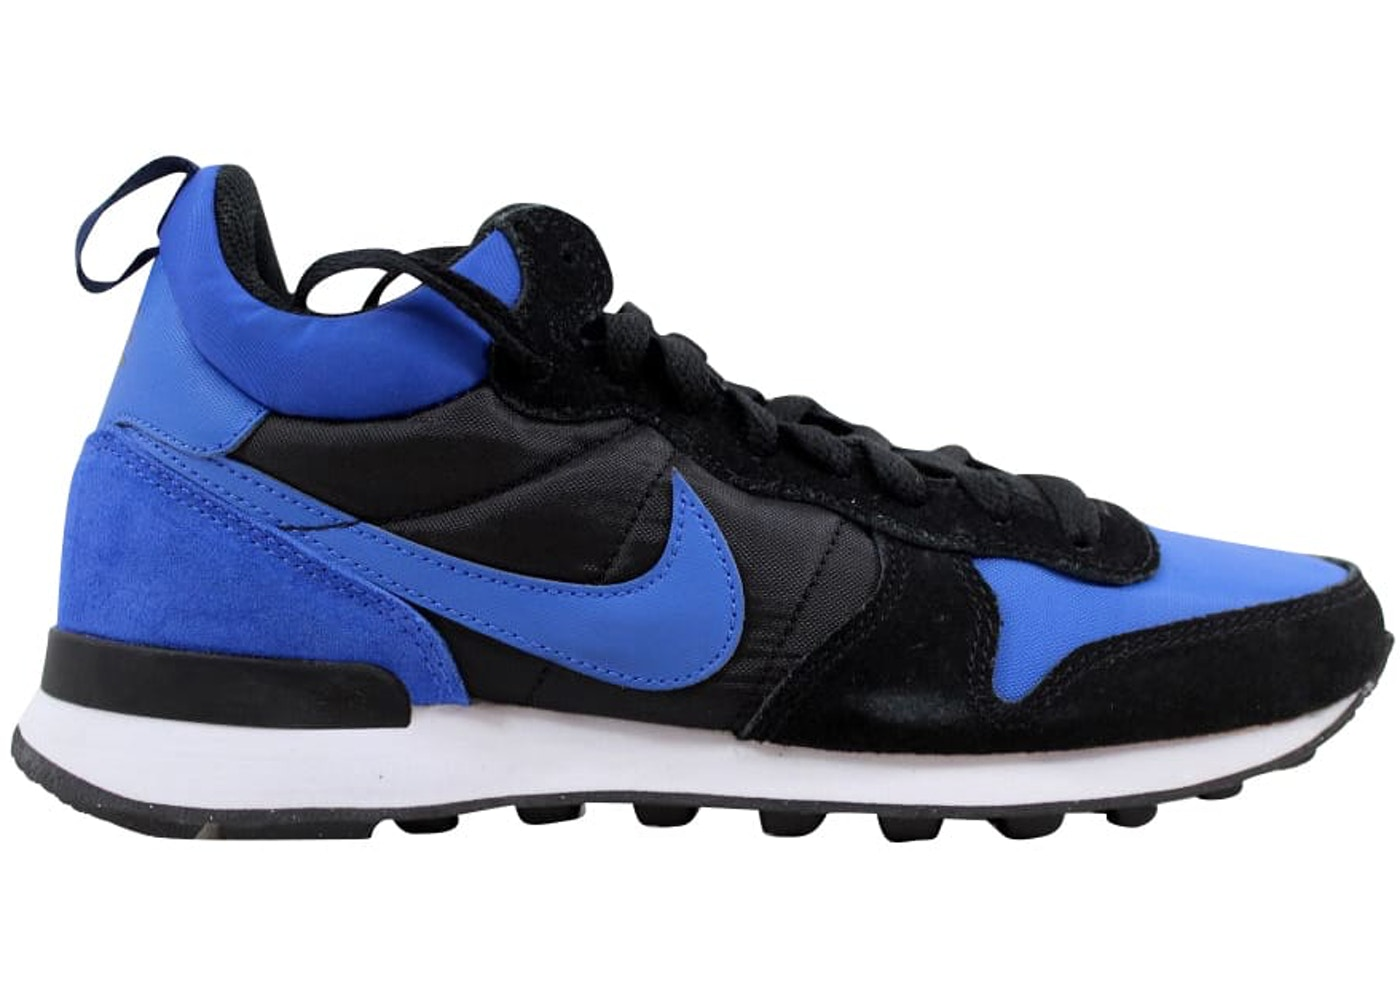 super popular f8c84 06f7e Nike Internationalist Mid Vrsty RoyalVrsty Royal-Black-White